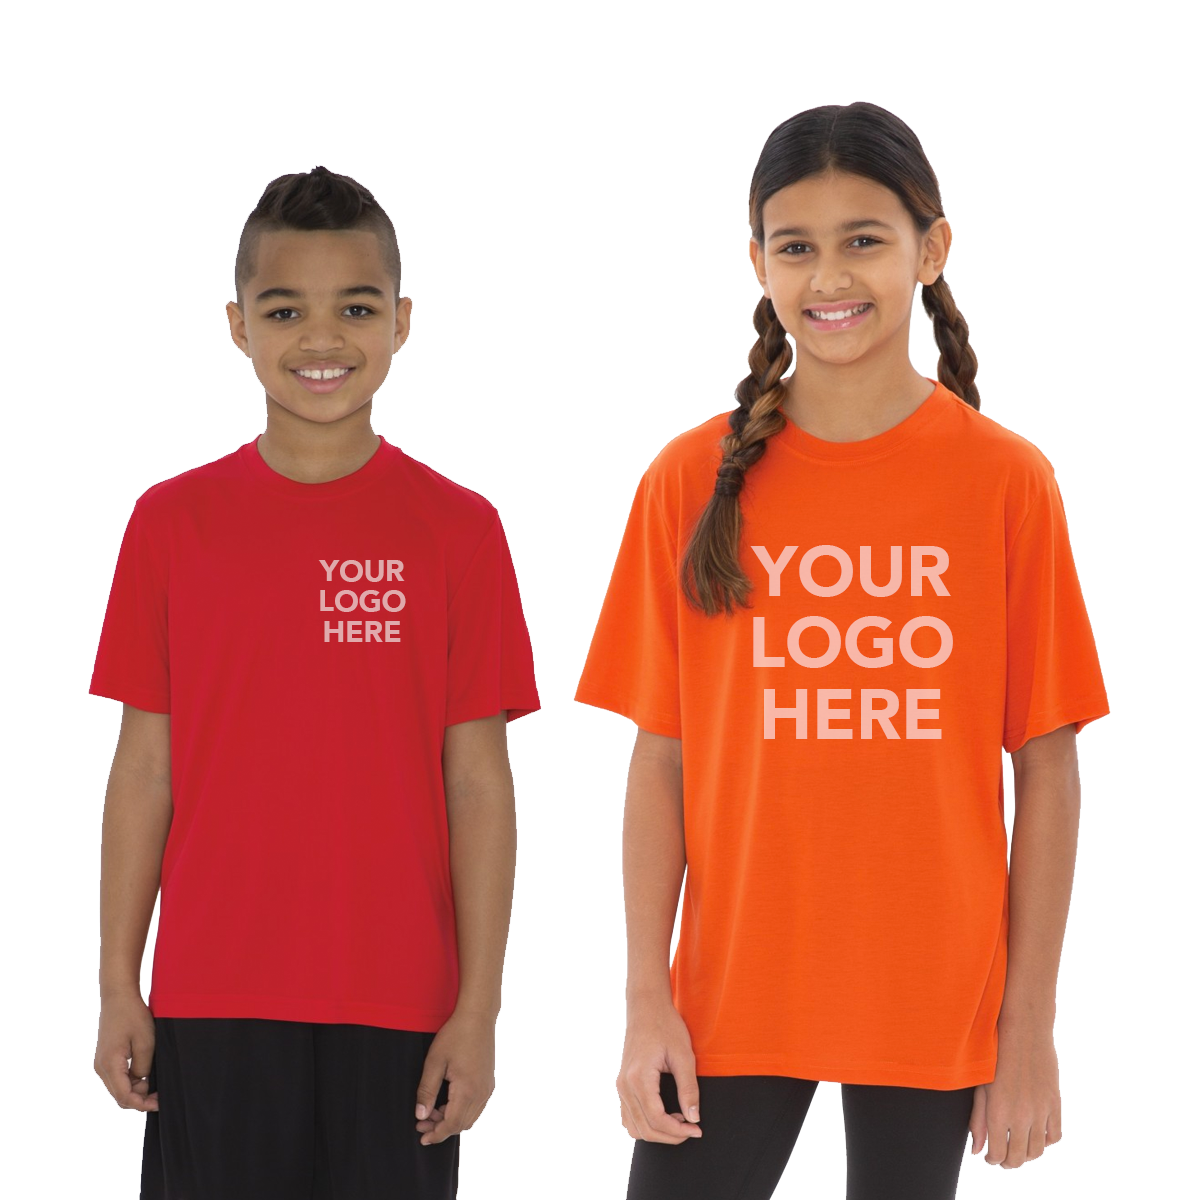 Youth Shirts